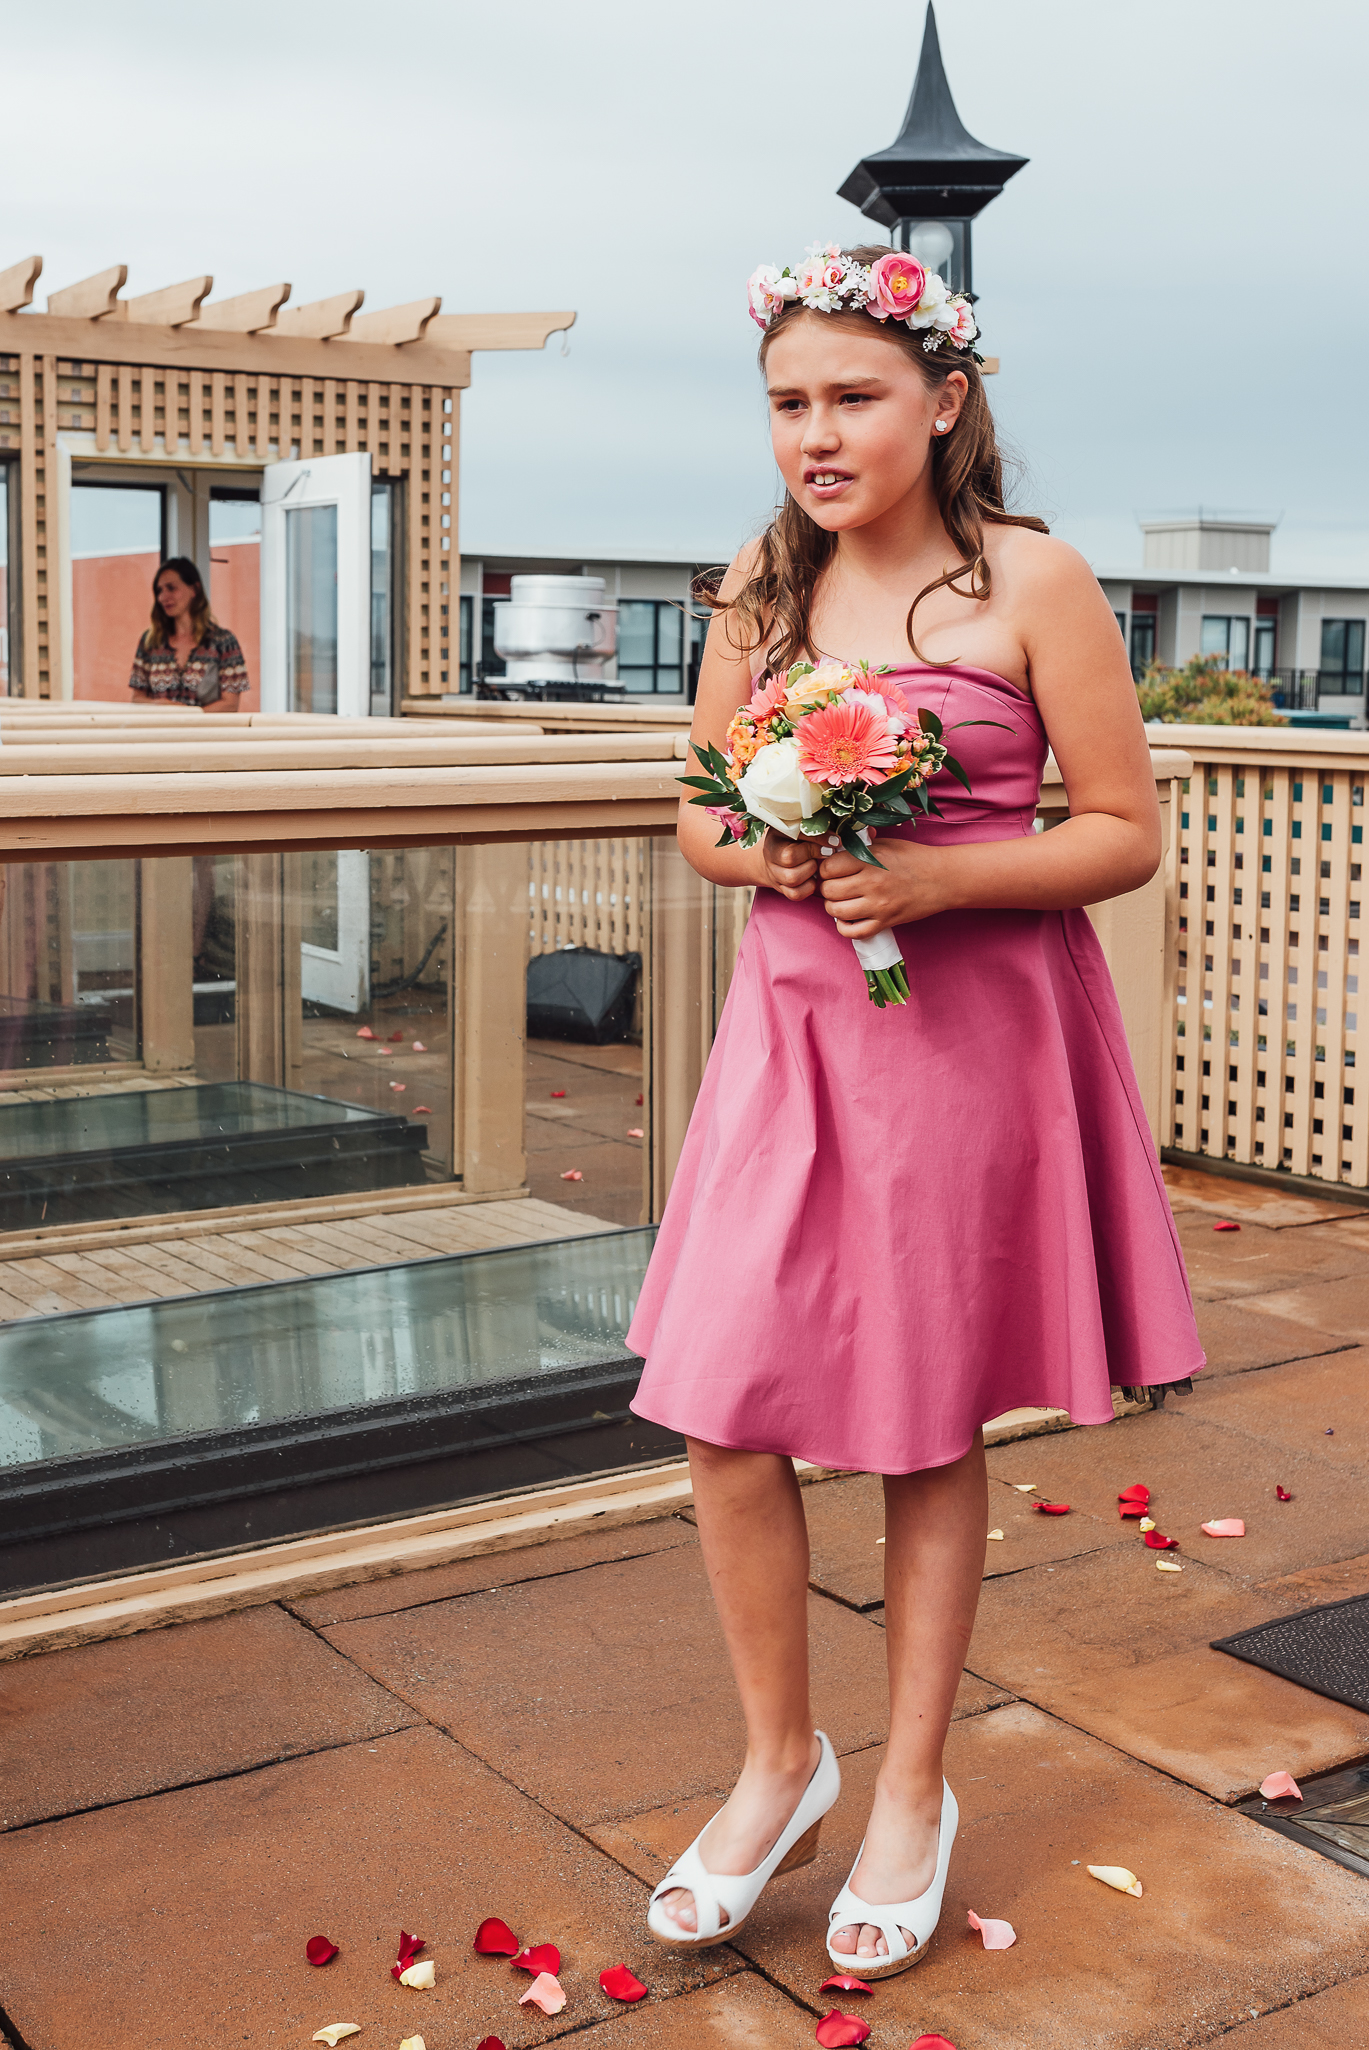 Lily_and_Lane_Childrens_Photographer_Victoria_BC-26.jpg